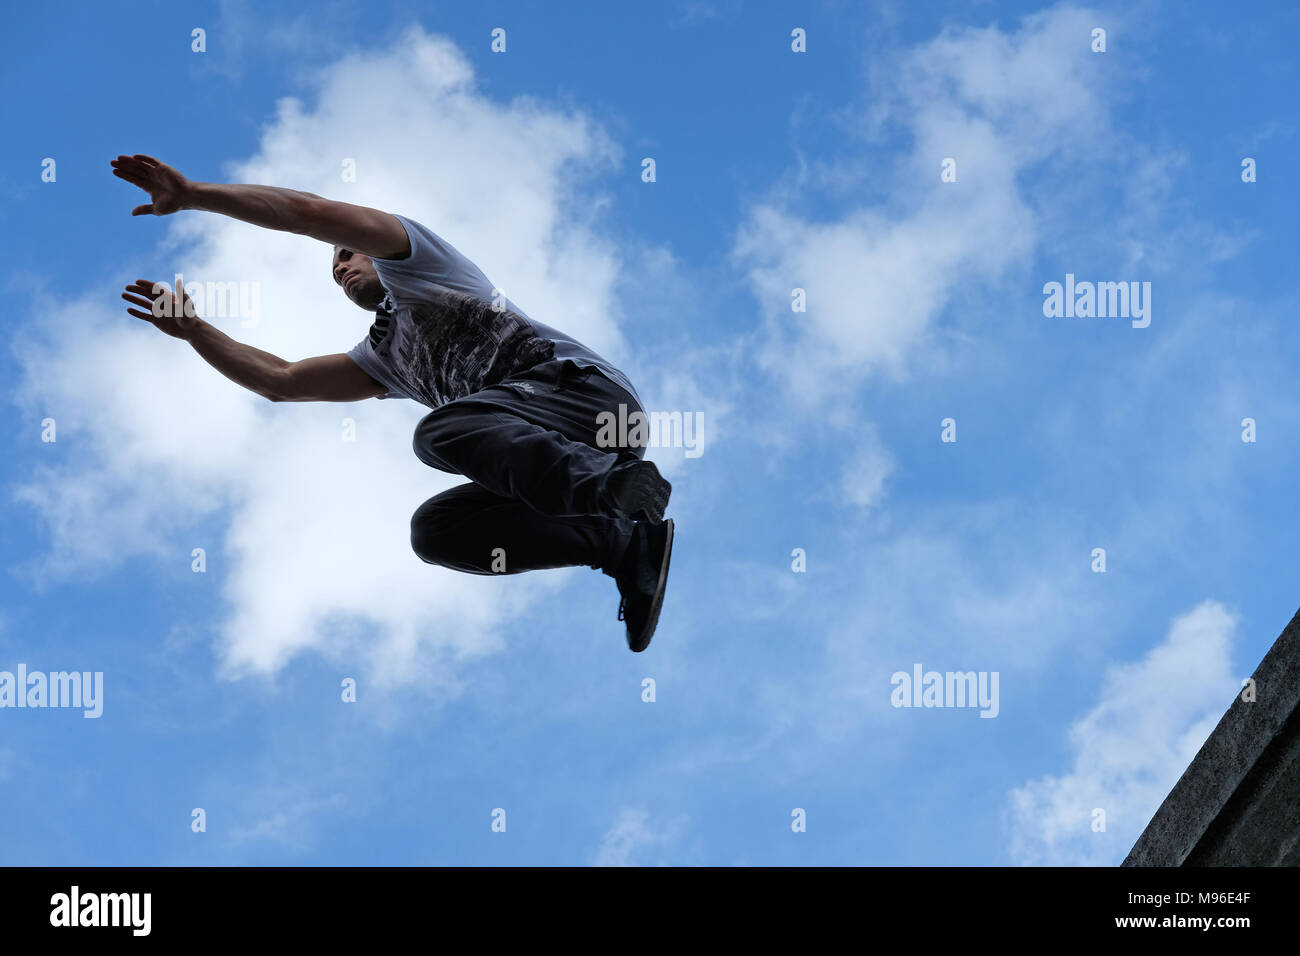 Parkour jumping on the South Bank, London - Stock Image